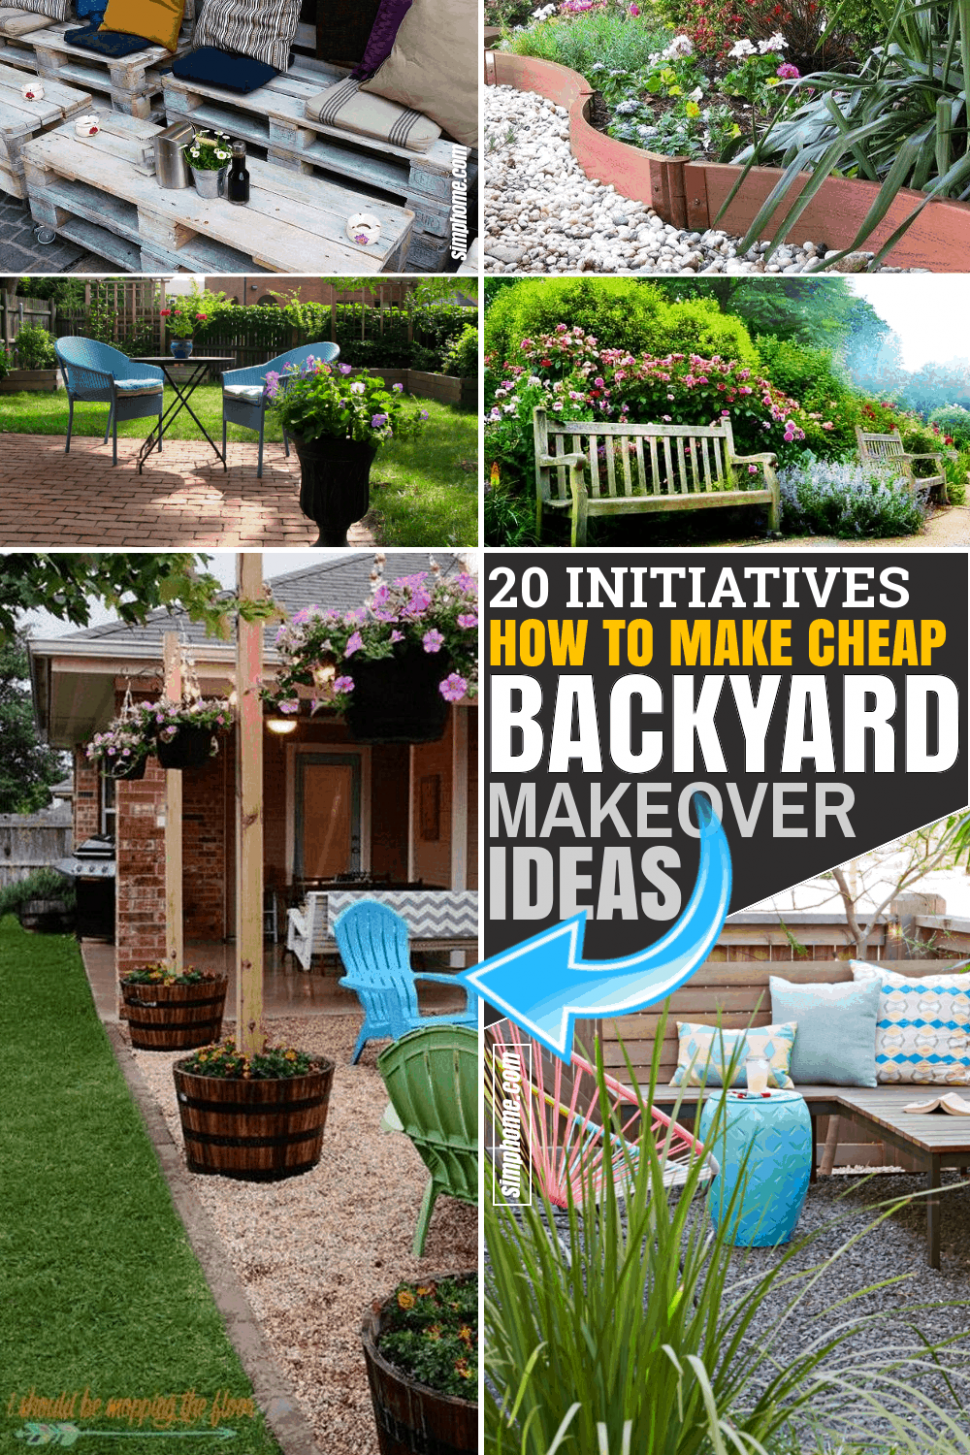 10 Initiatives of Cheap Backyard Makeover Ideas - Simphome - backyard ideas on a budget pictures